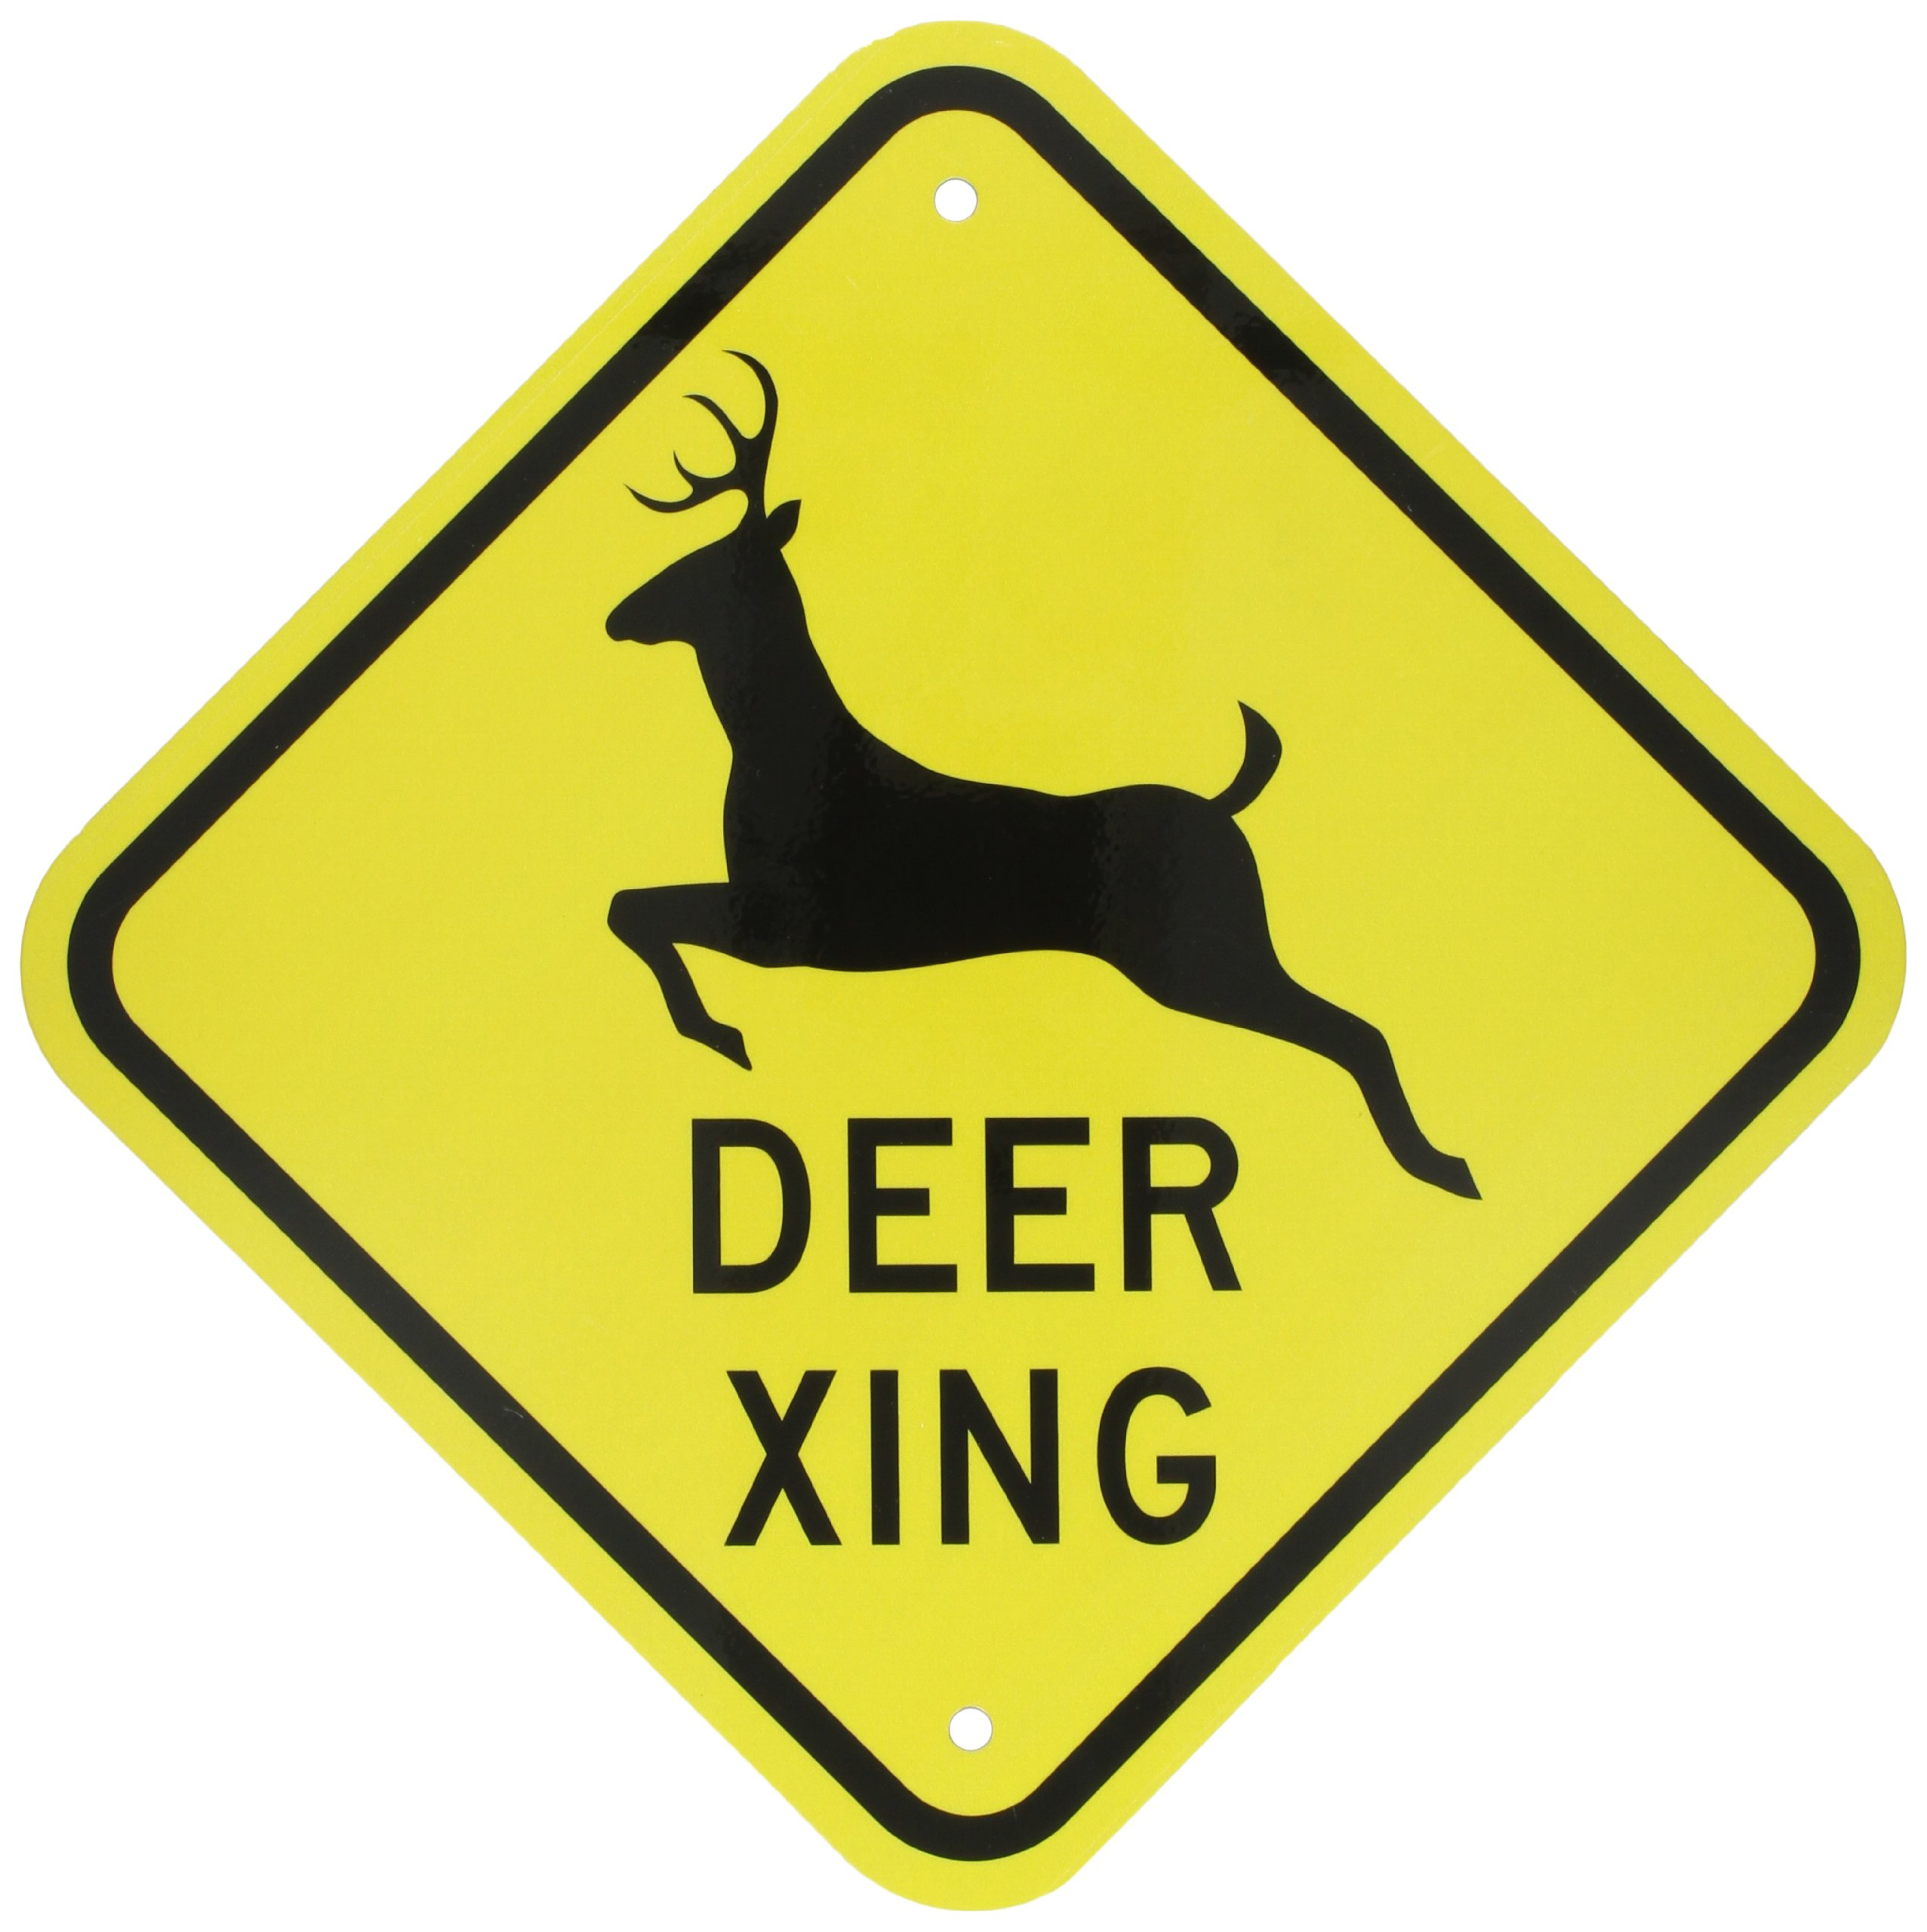 SmartSign 3M Engineer Grade Reflective Sign, Legend''Deer Xing'' with Graphic, 12'' square, Black on Yellow